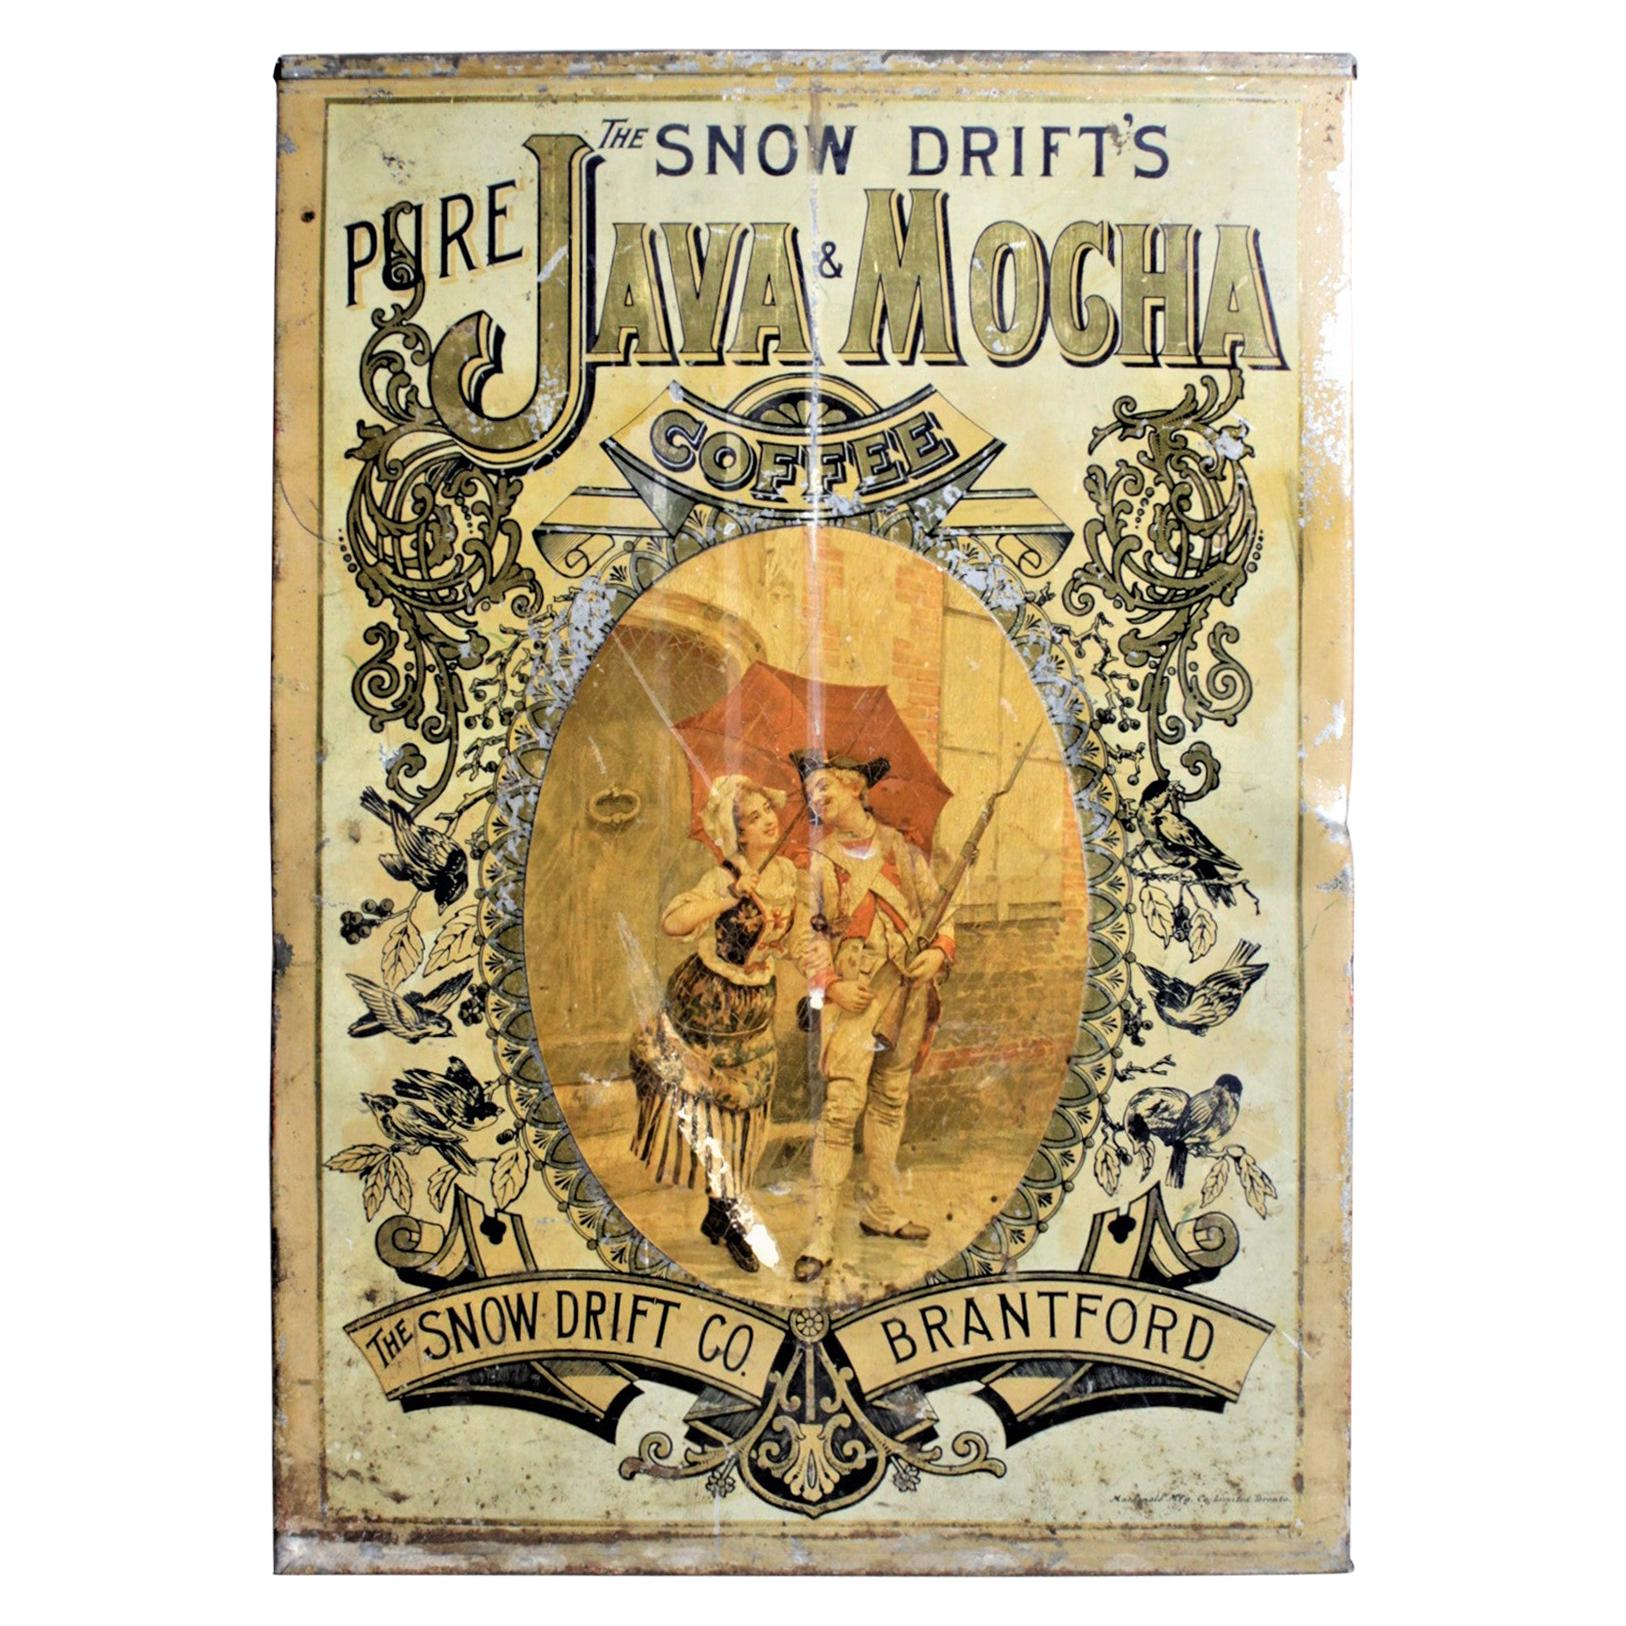 Antique Canadian General Store Snow Drift Mocha Coffee Advertising Display Tin